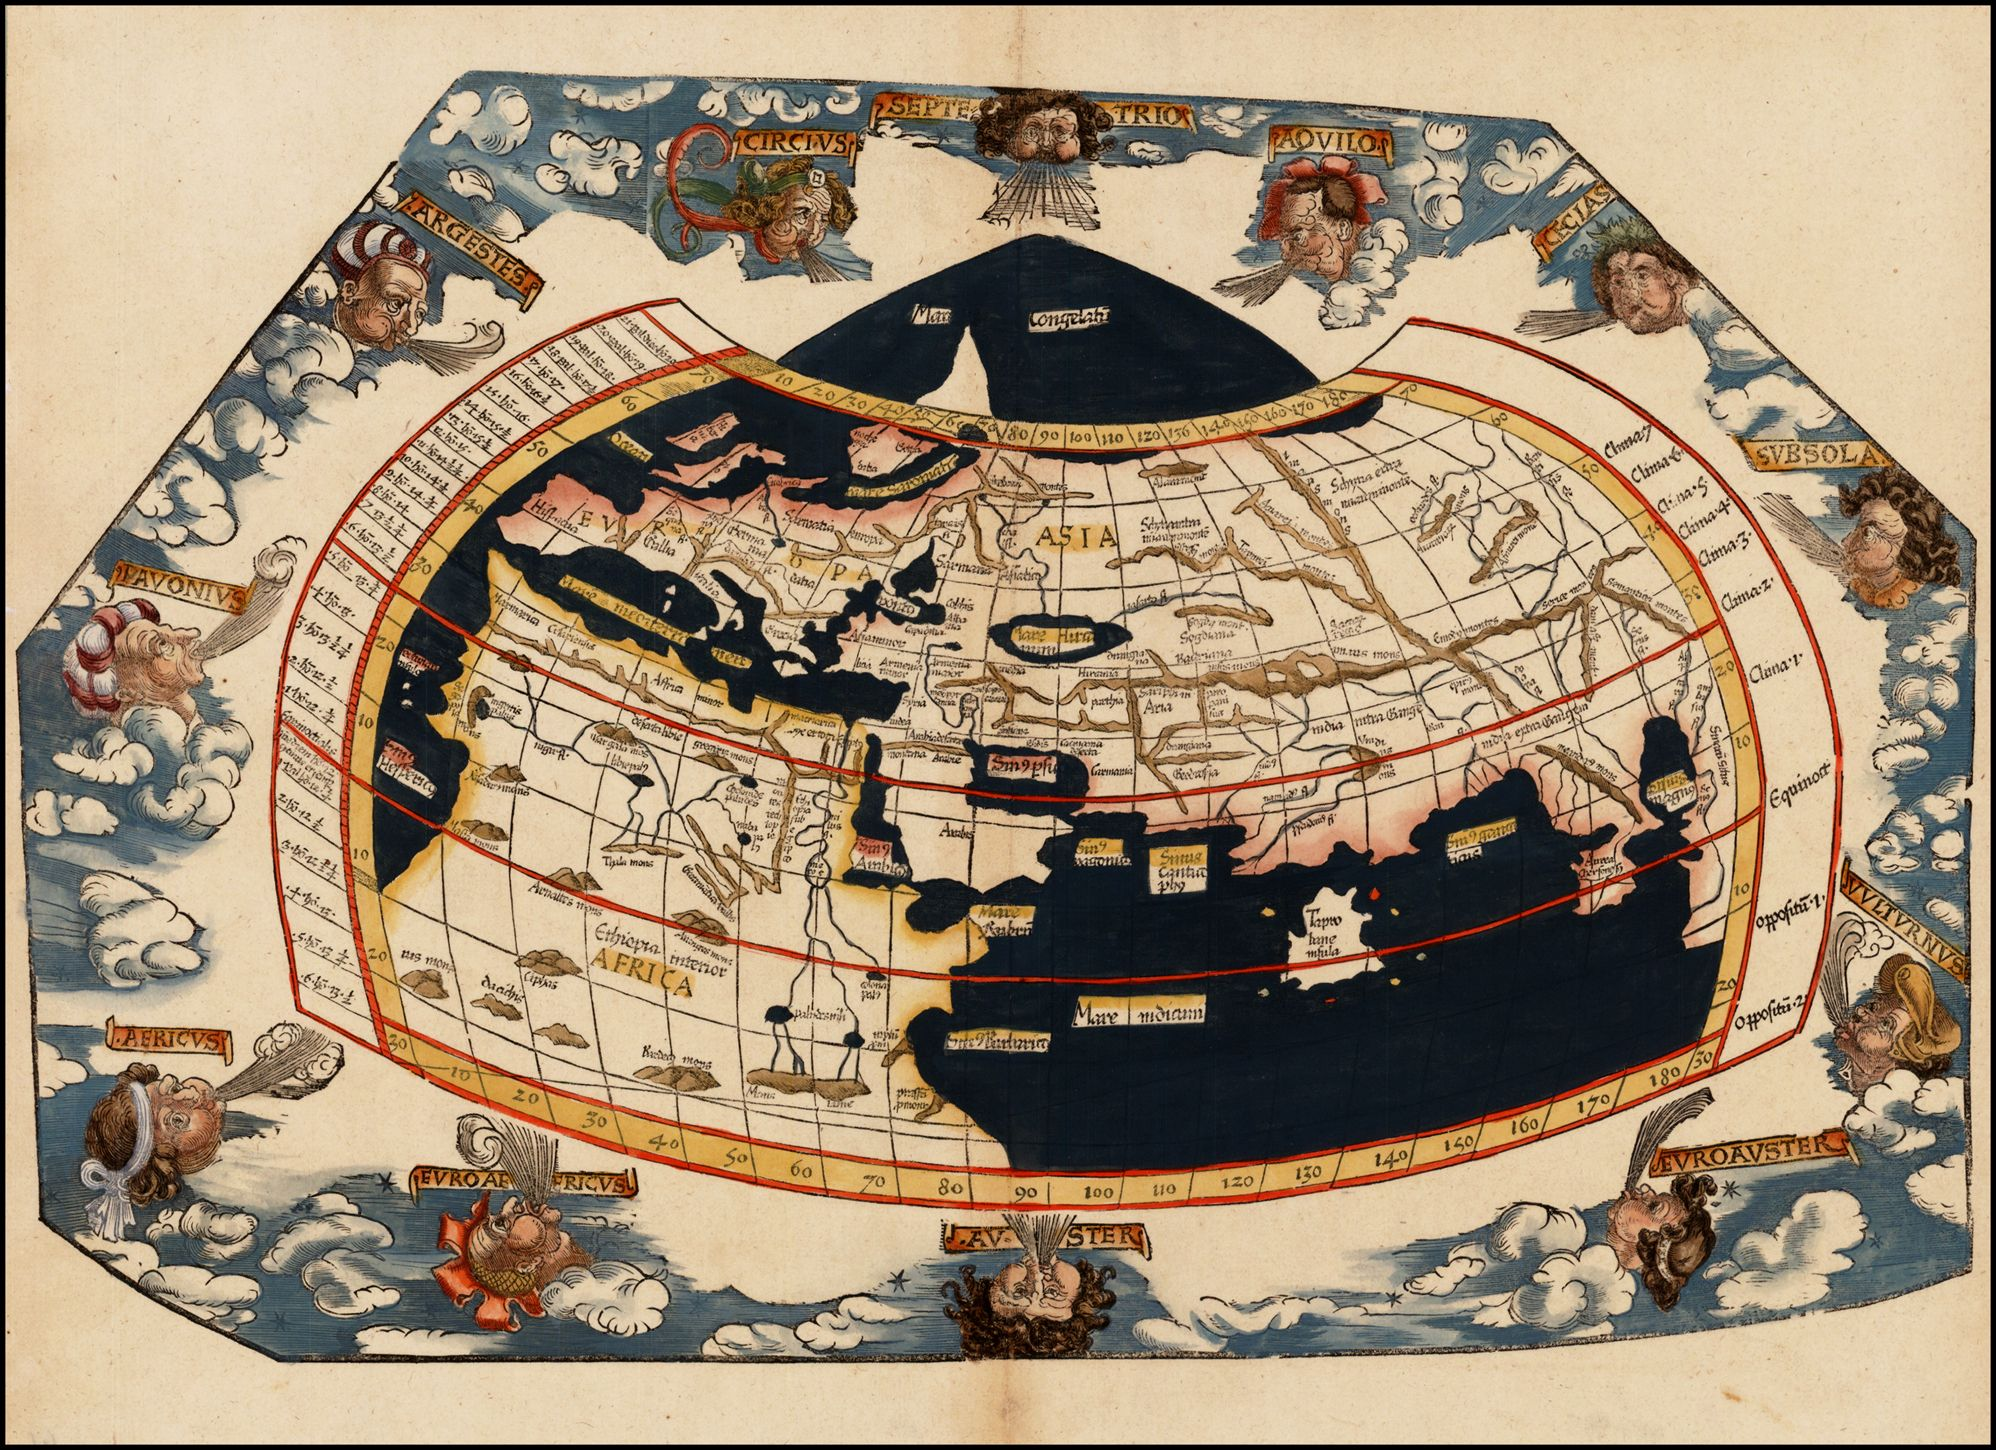 Barry lawrence ruderman antique maps inctitle untitled world map barry lawrence ruderman antique maps inctitle untitled world map map maker laurent fries place date strassbourg 1522 1535 coloring hand gumiabroncs Image collections